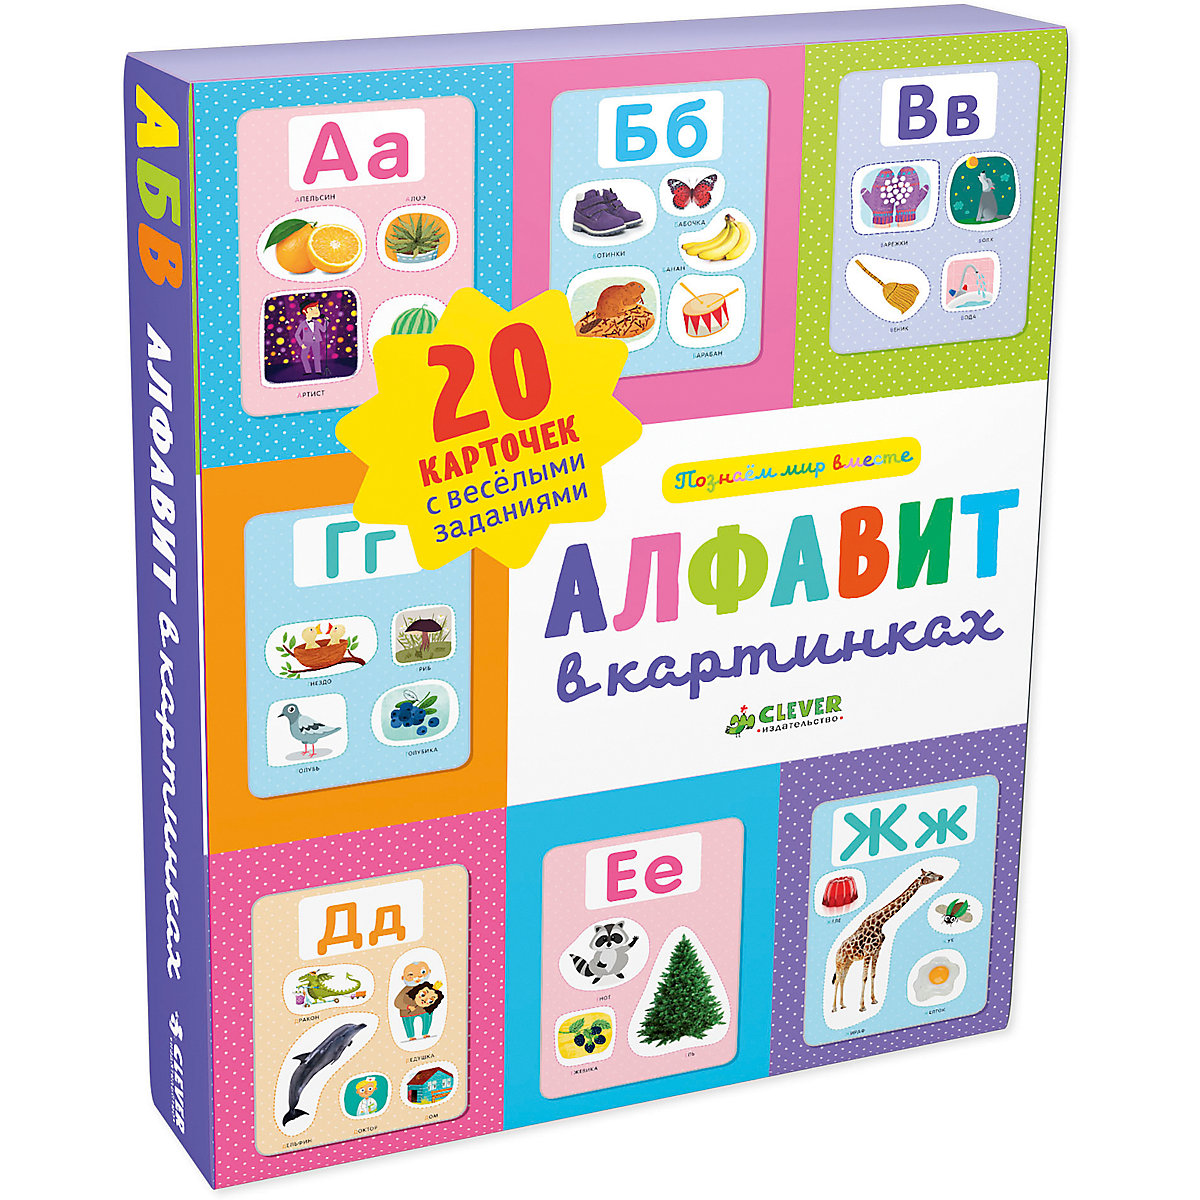 Books CLEVER 8780239 Children Education Encyclopedia Alphabet Dictionary Book For Baby MTpromo